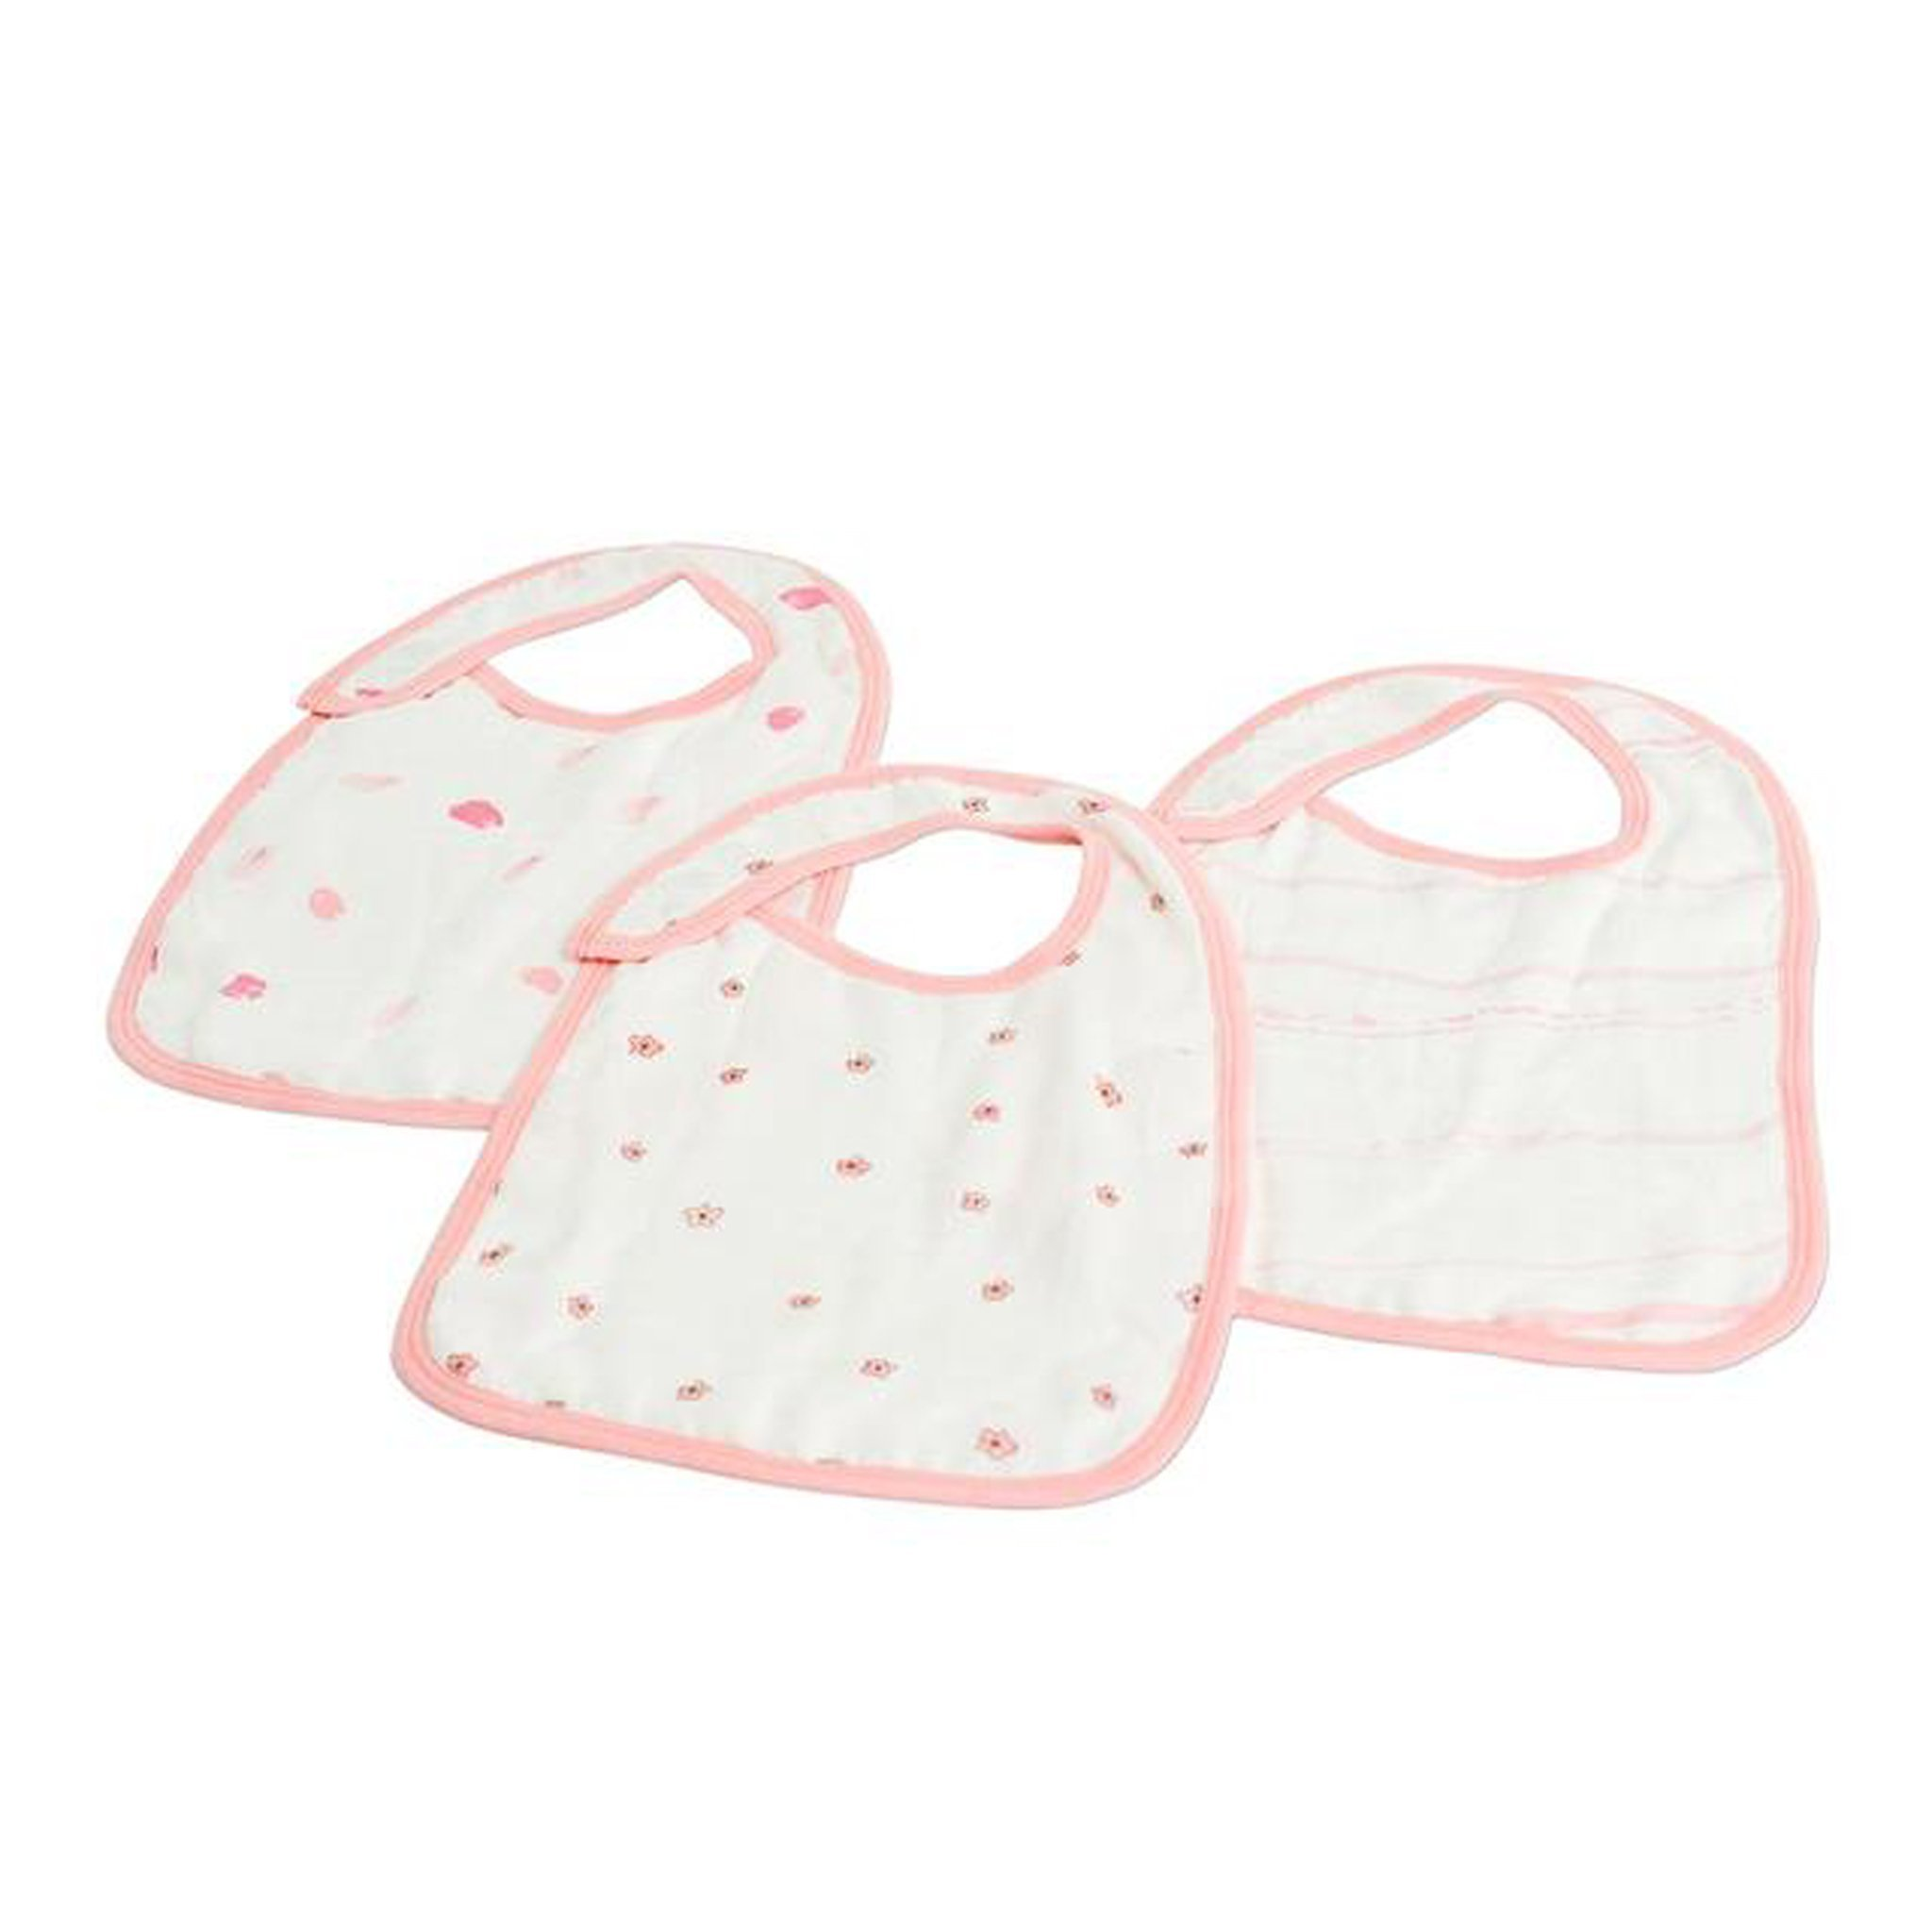 Newcastle Classics Bamboo Snap Bib 3 Pack - Pink Flower